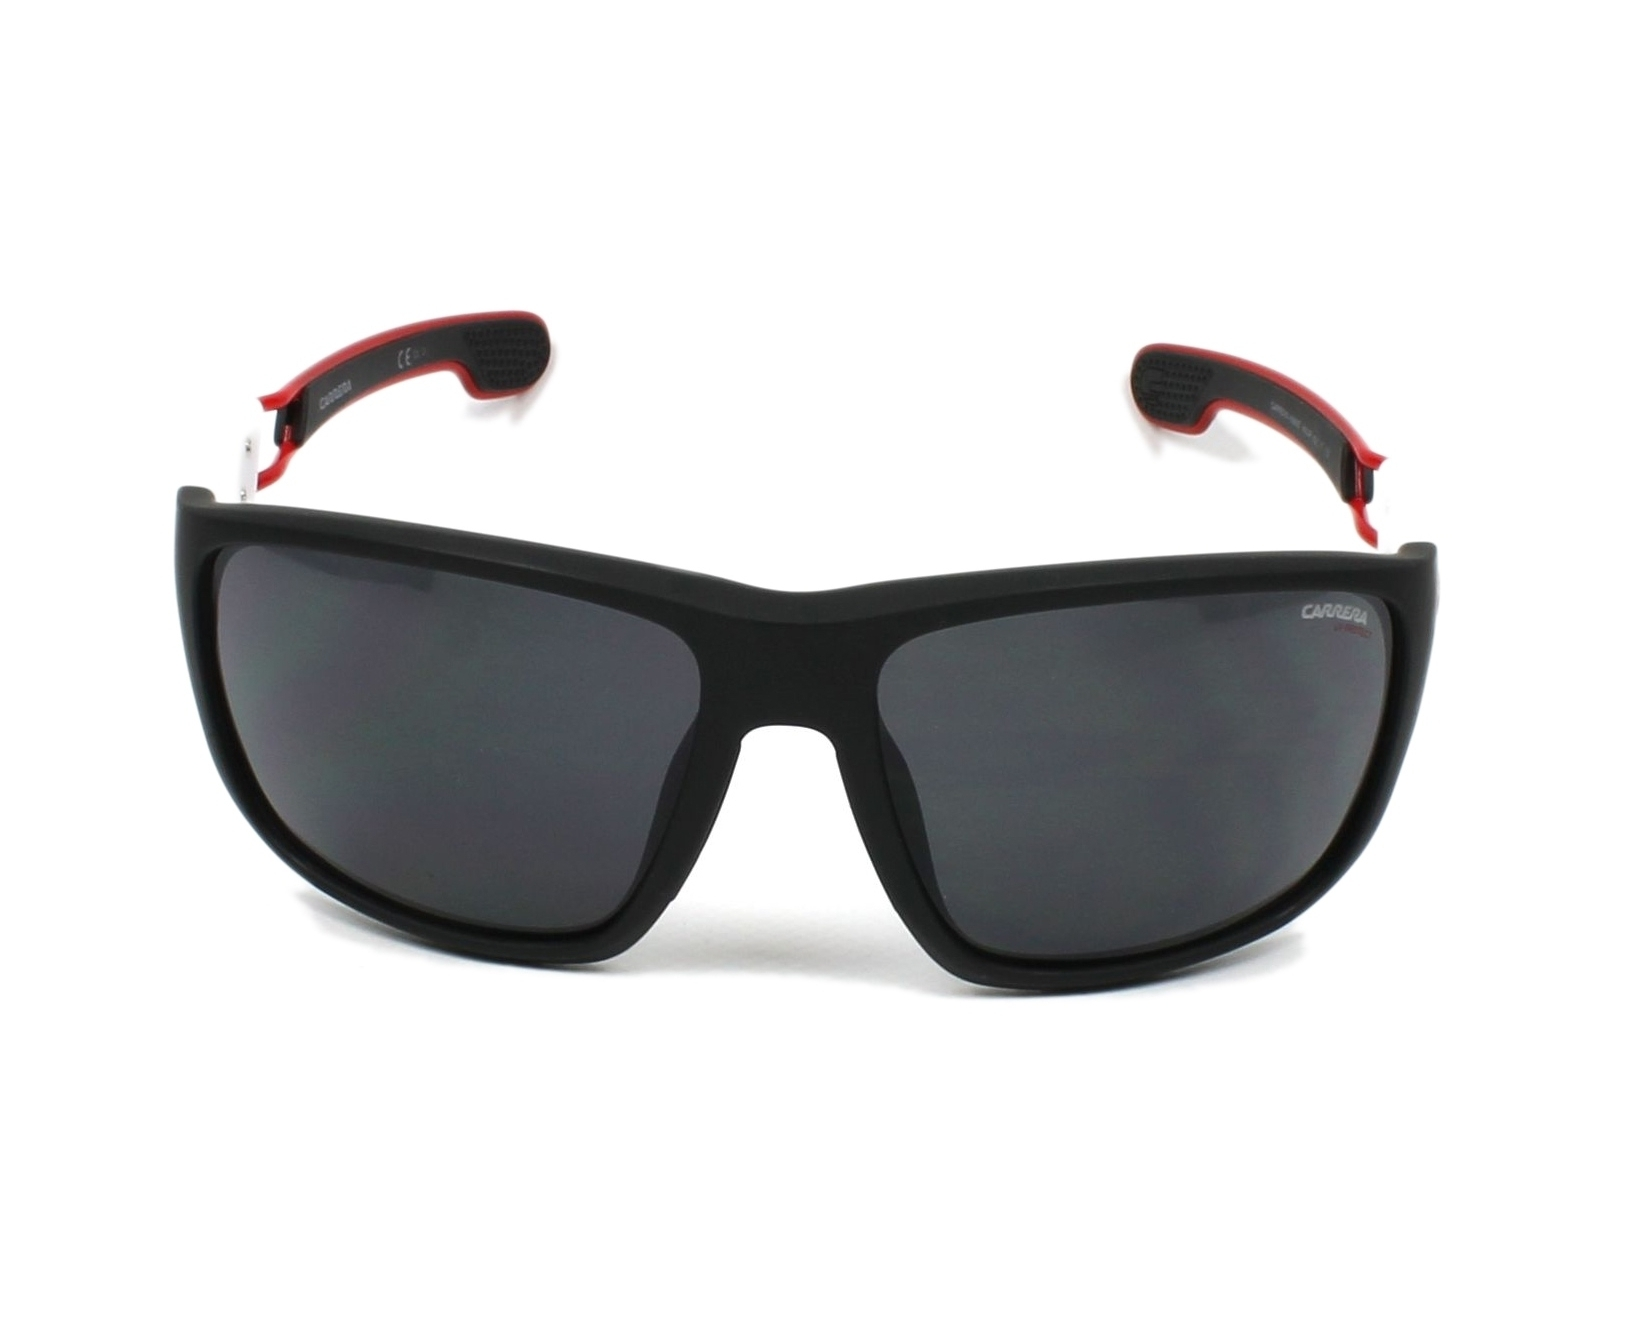 a16c88a8537 Sunglasses Carrera 4006-S 4NL IR 63-17 Black White front view